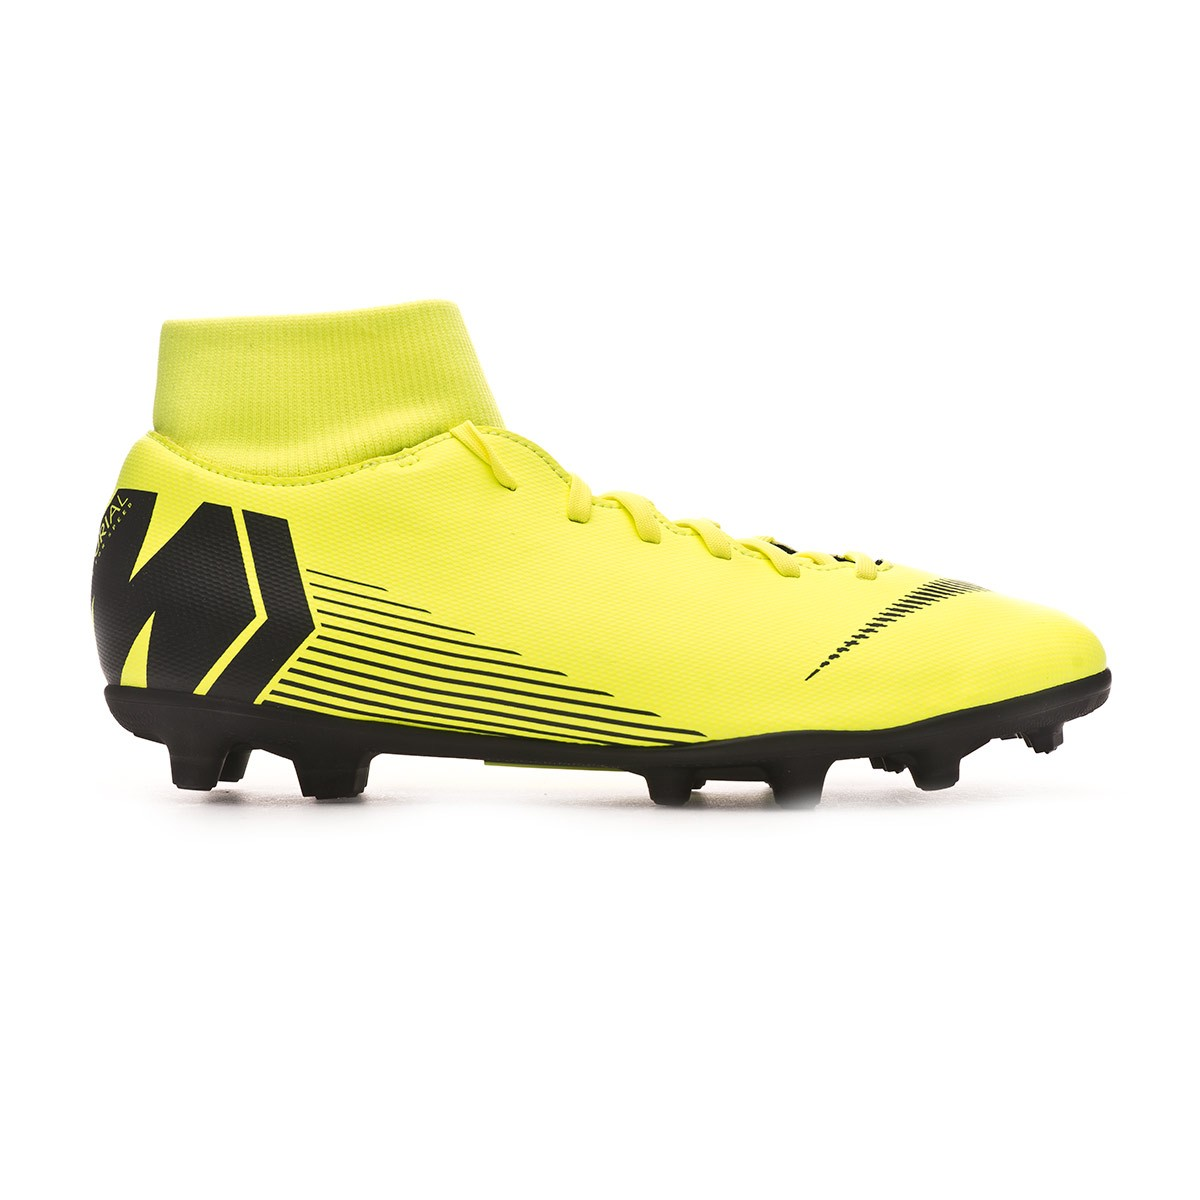 dec77c5f5 Football Boots Nike Mercurial Superfly VI Club MG Volt-Black - Tienda de fútbol  Fútbol Emotion